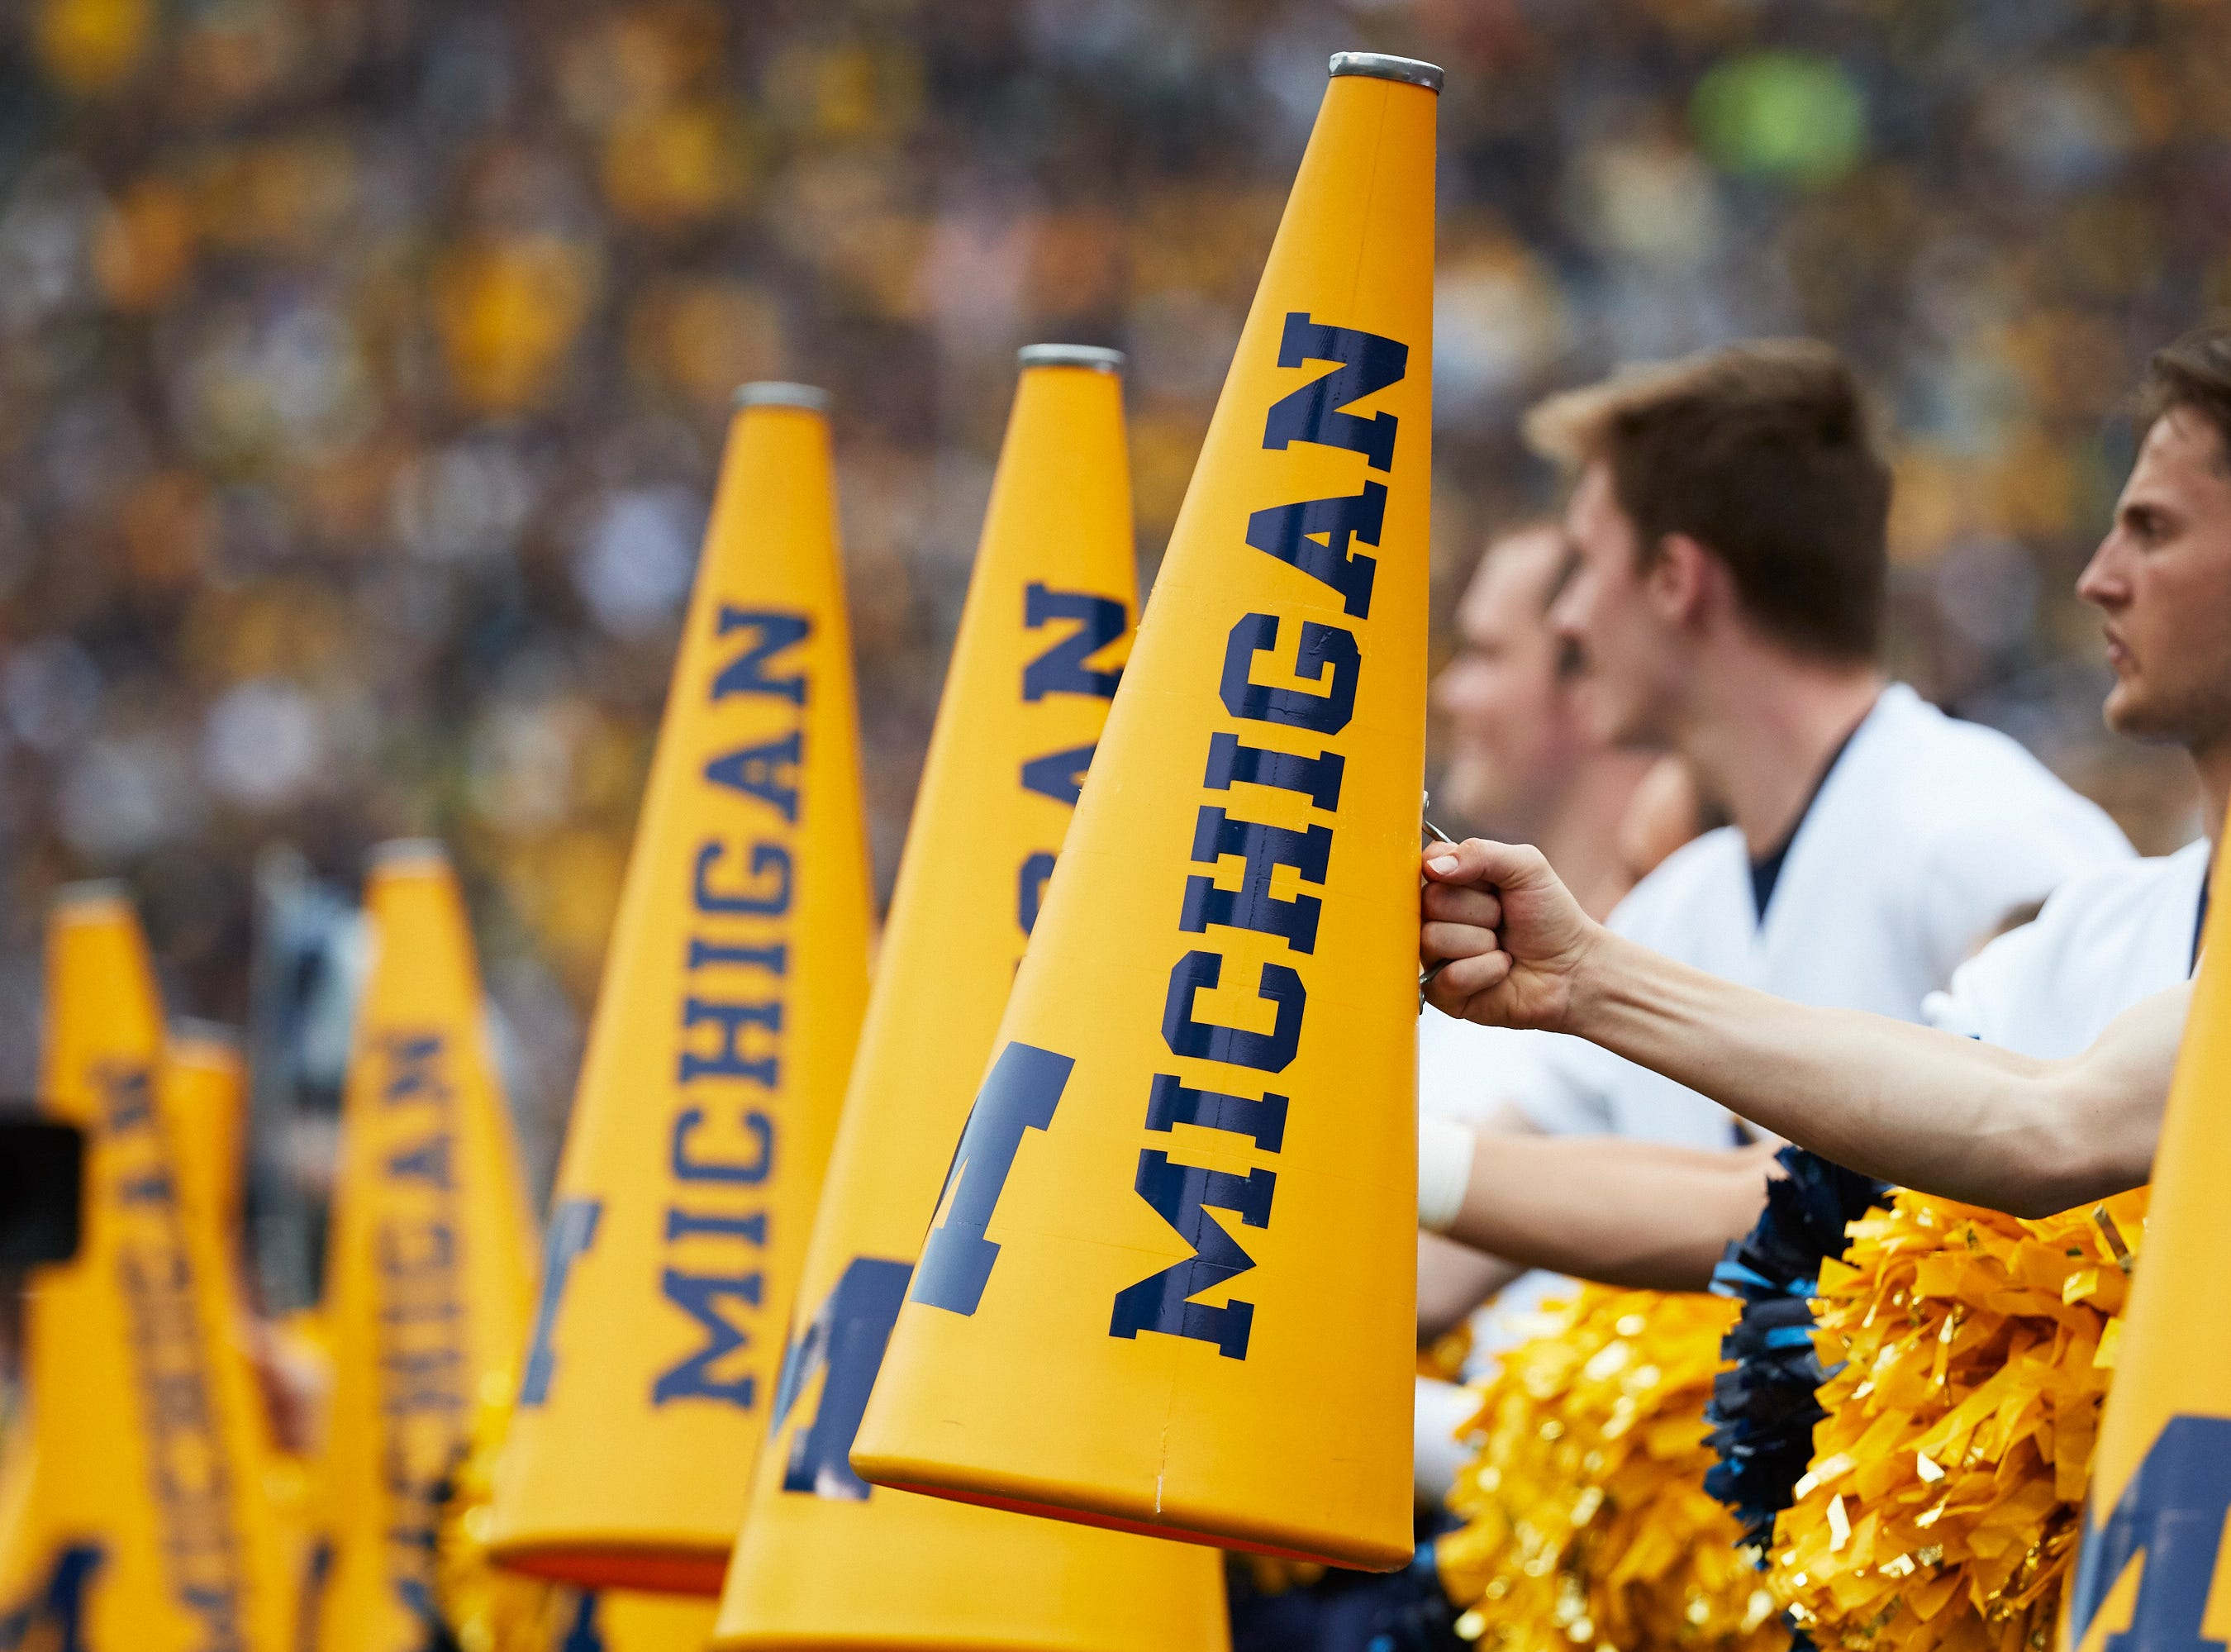 Sep 8, 2018; Ann Arbor, MI, USA; Michigan Wolverines cheerleader megaphones at Michigan Stadium. Mandatory Credit: Rick Osentoski-USA TODAY Sports